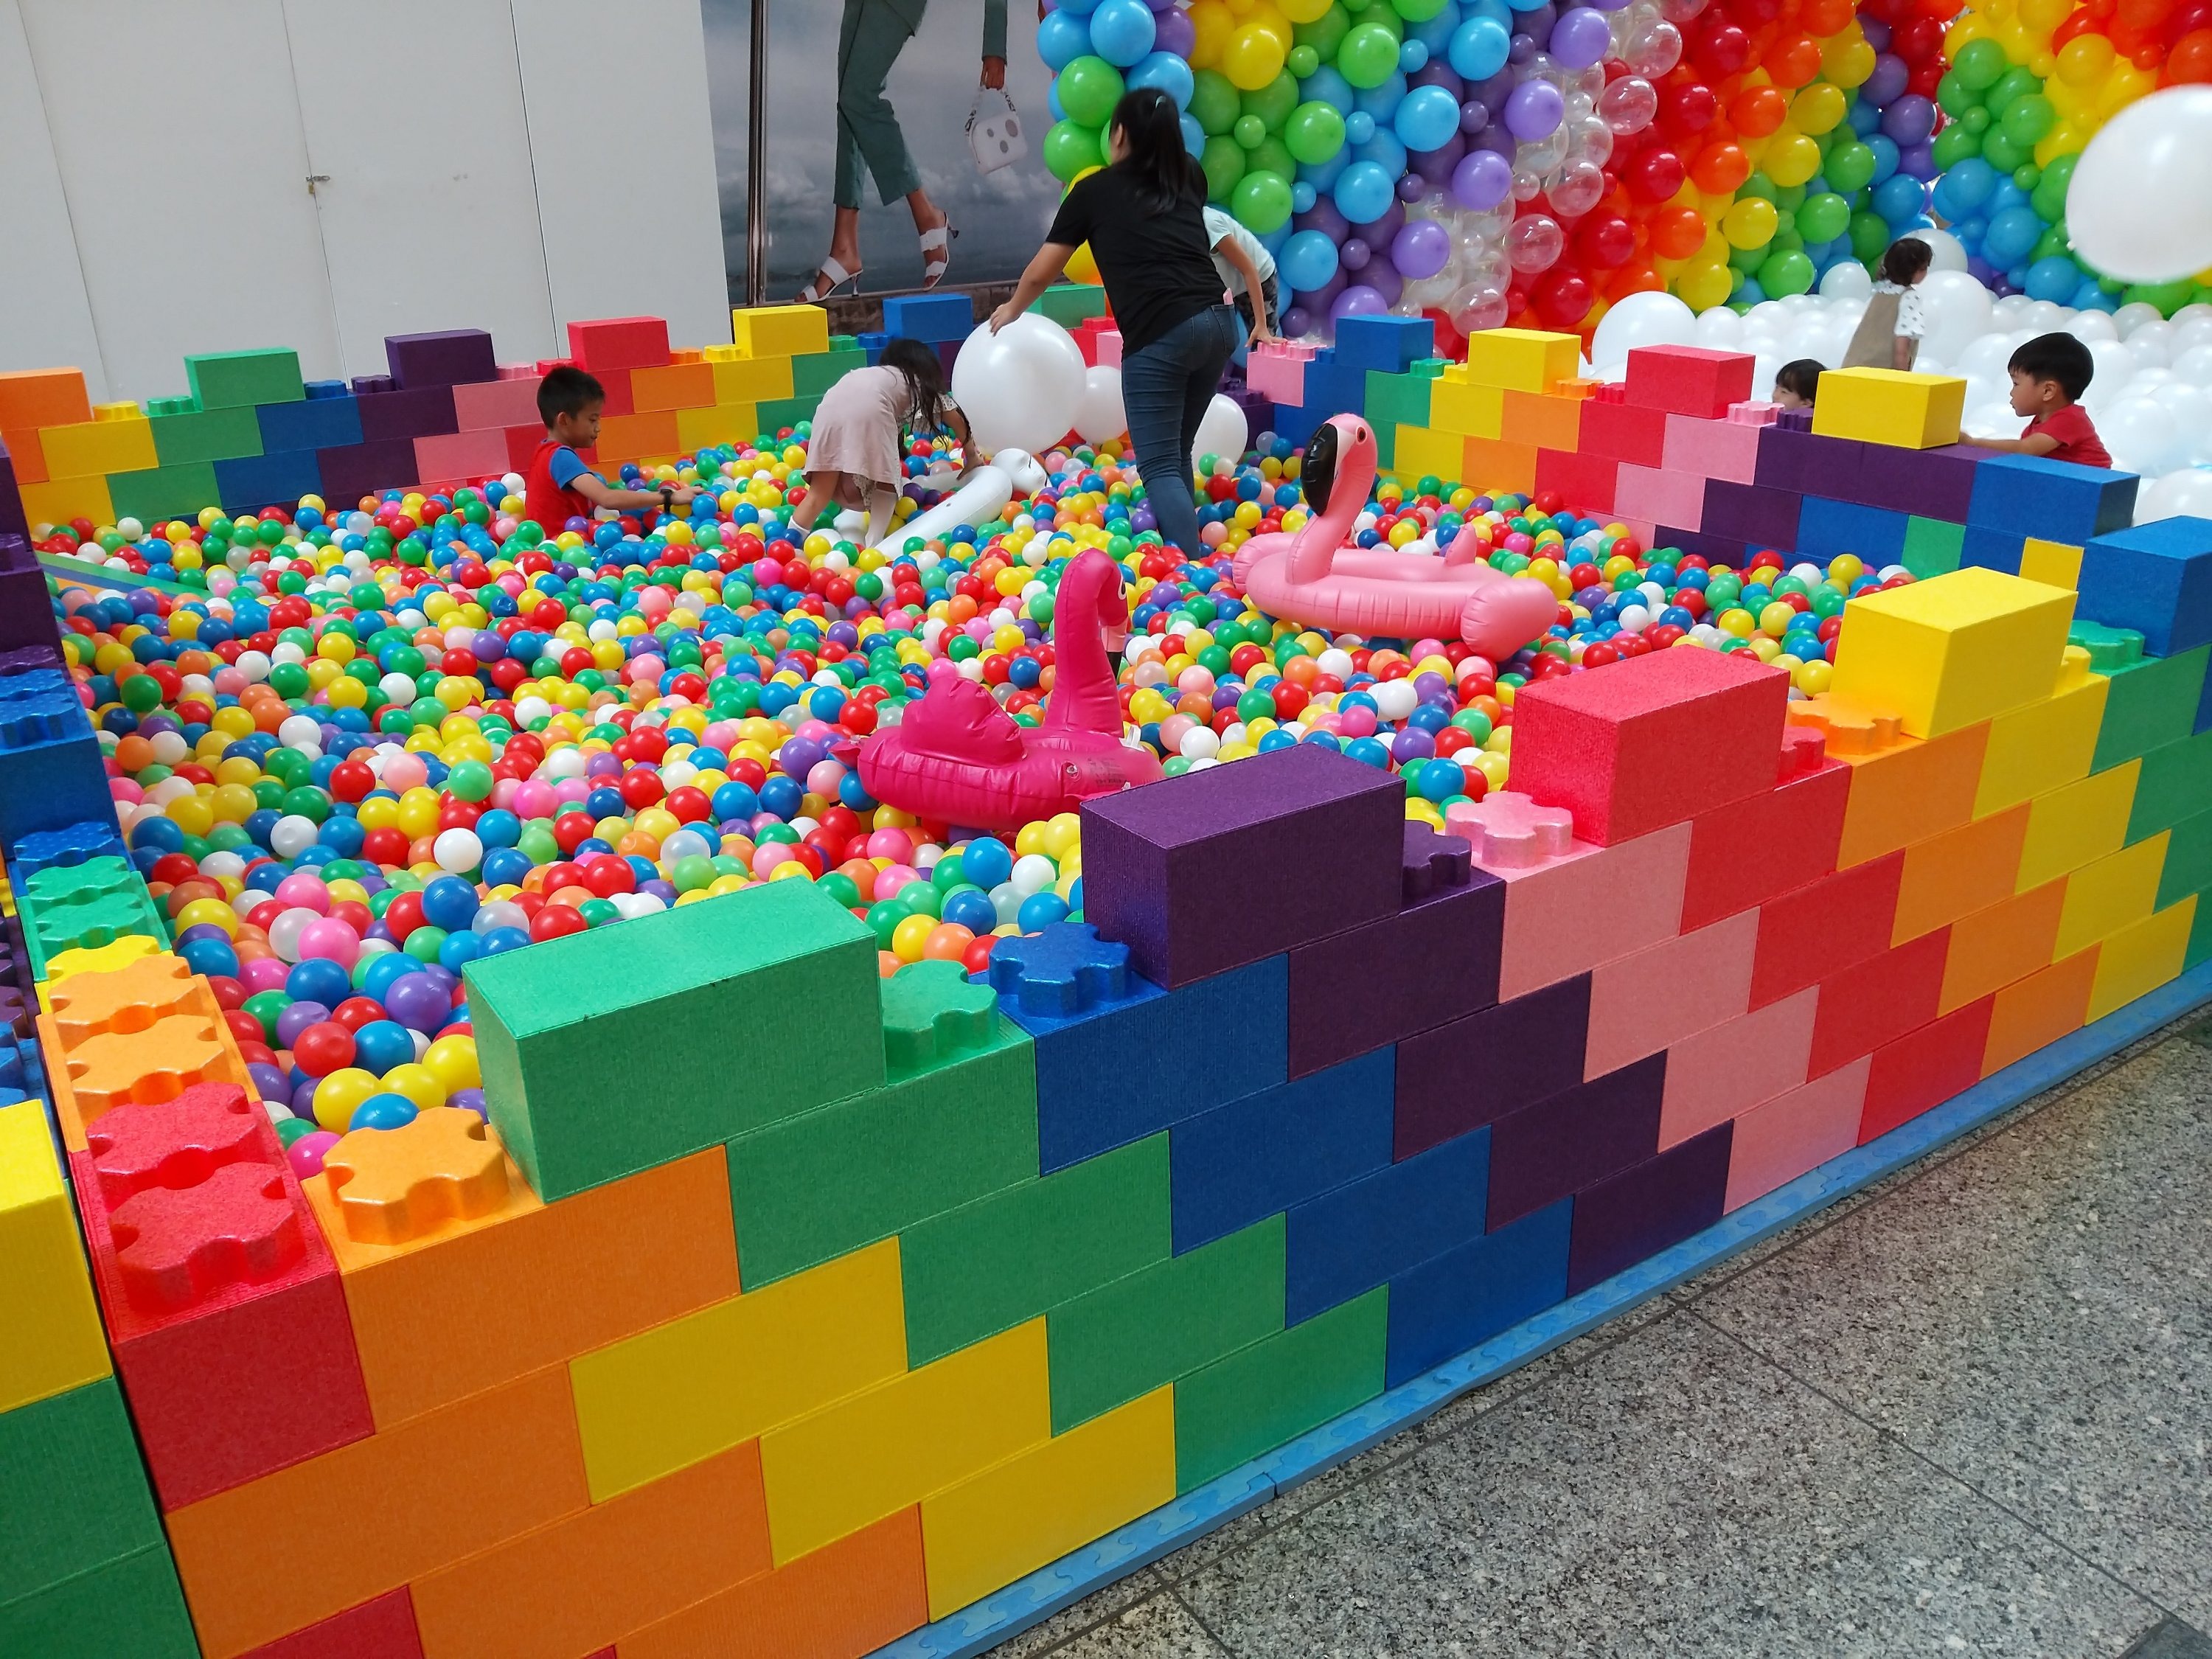 , Ball Pit + Balloon Pit Combo!, Singapore Balloon Decoration Services - Balloon Workshop and Balloon Sculpting